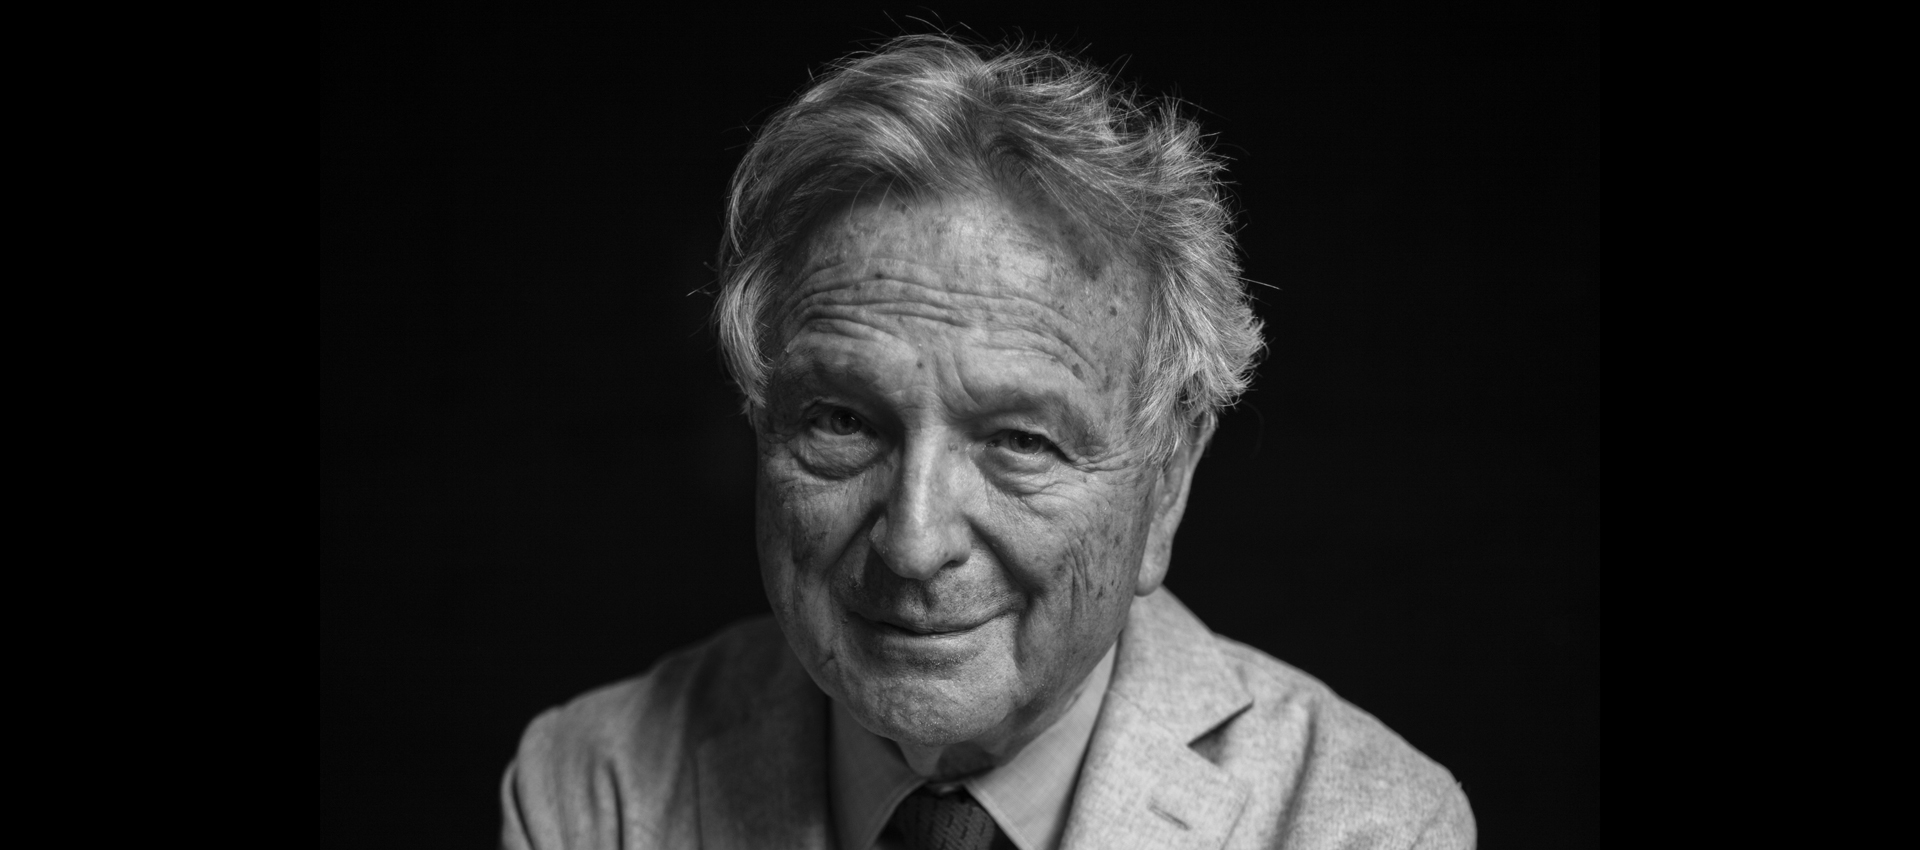 Rafael Moneo. Photograph © Massilimiliano Polles